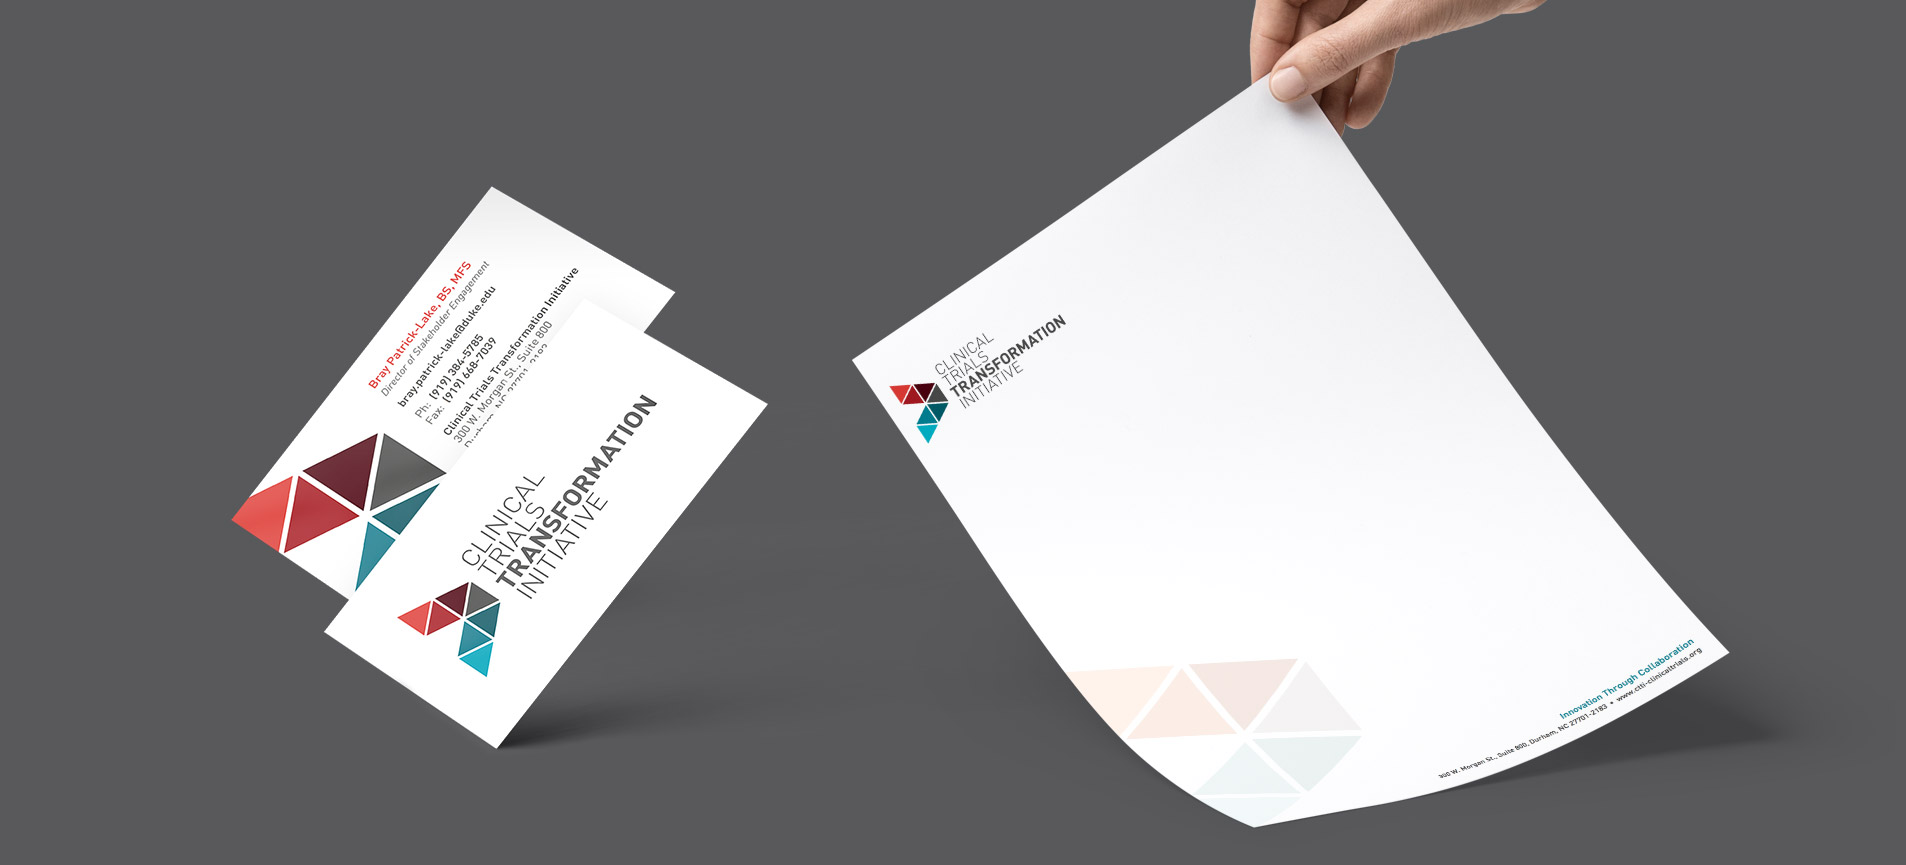 stationery design for ctti